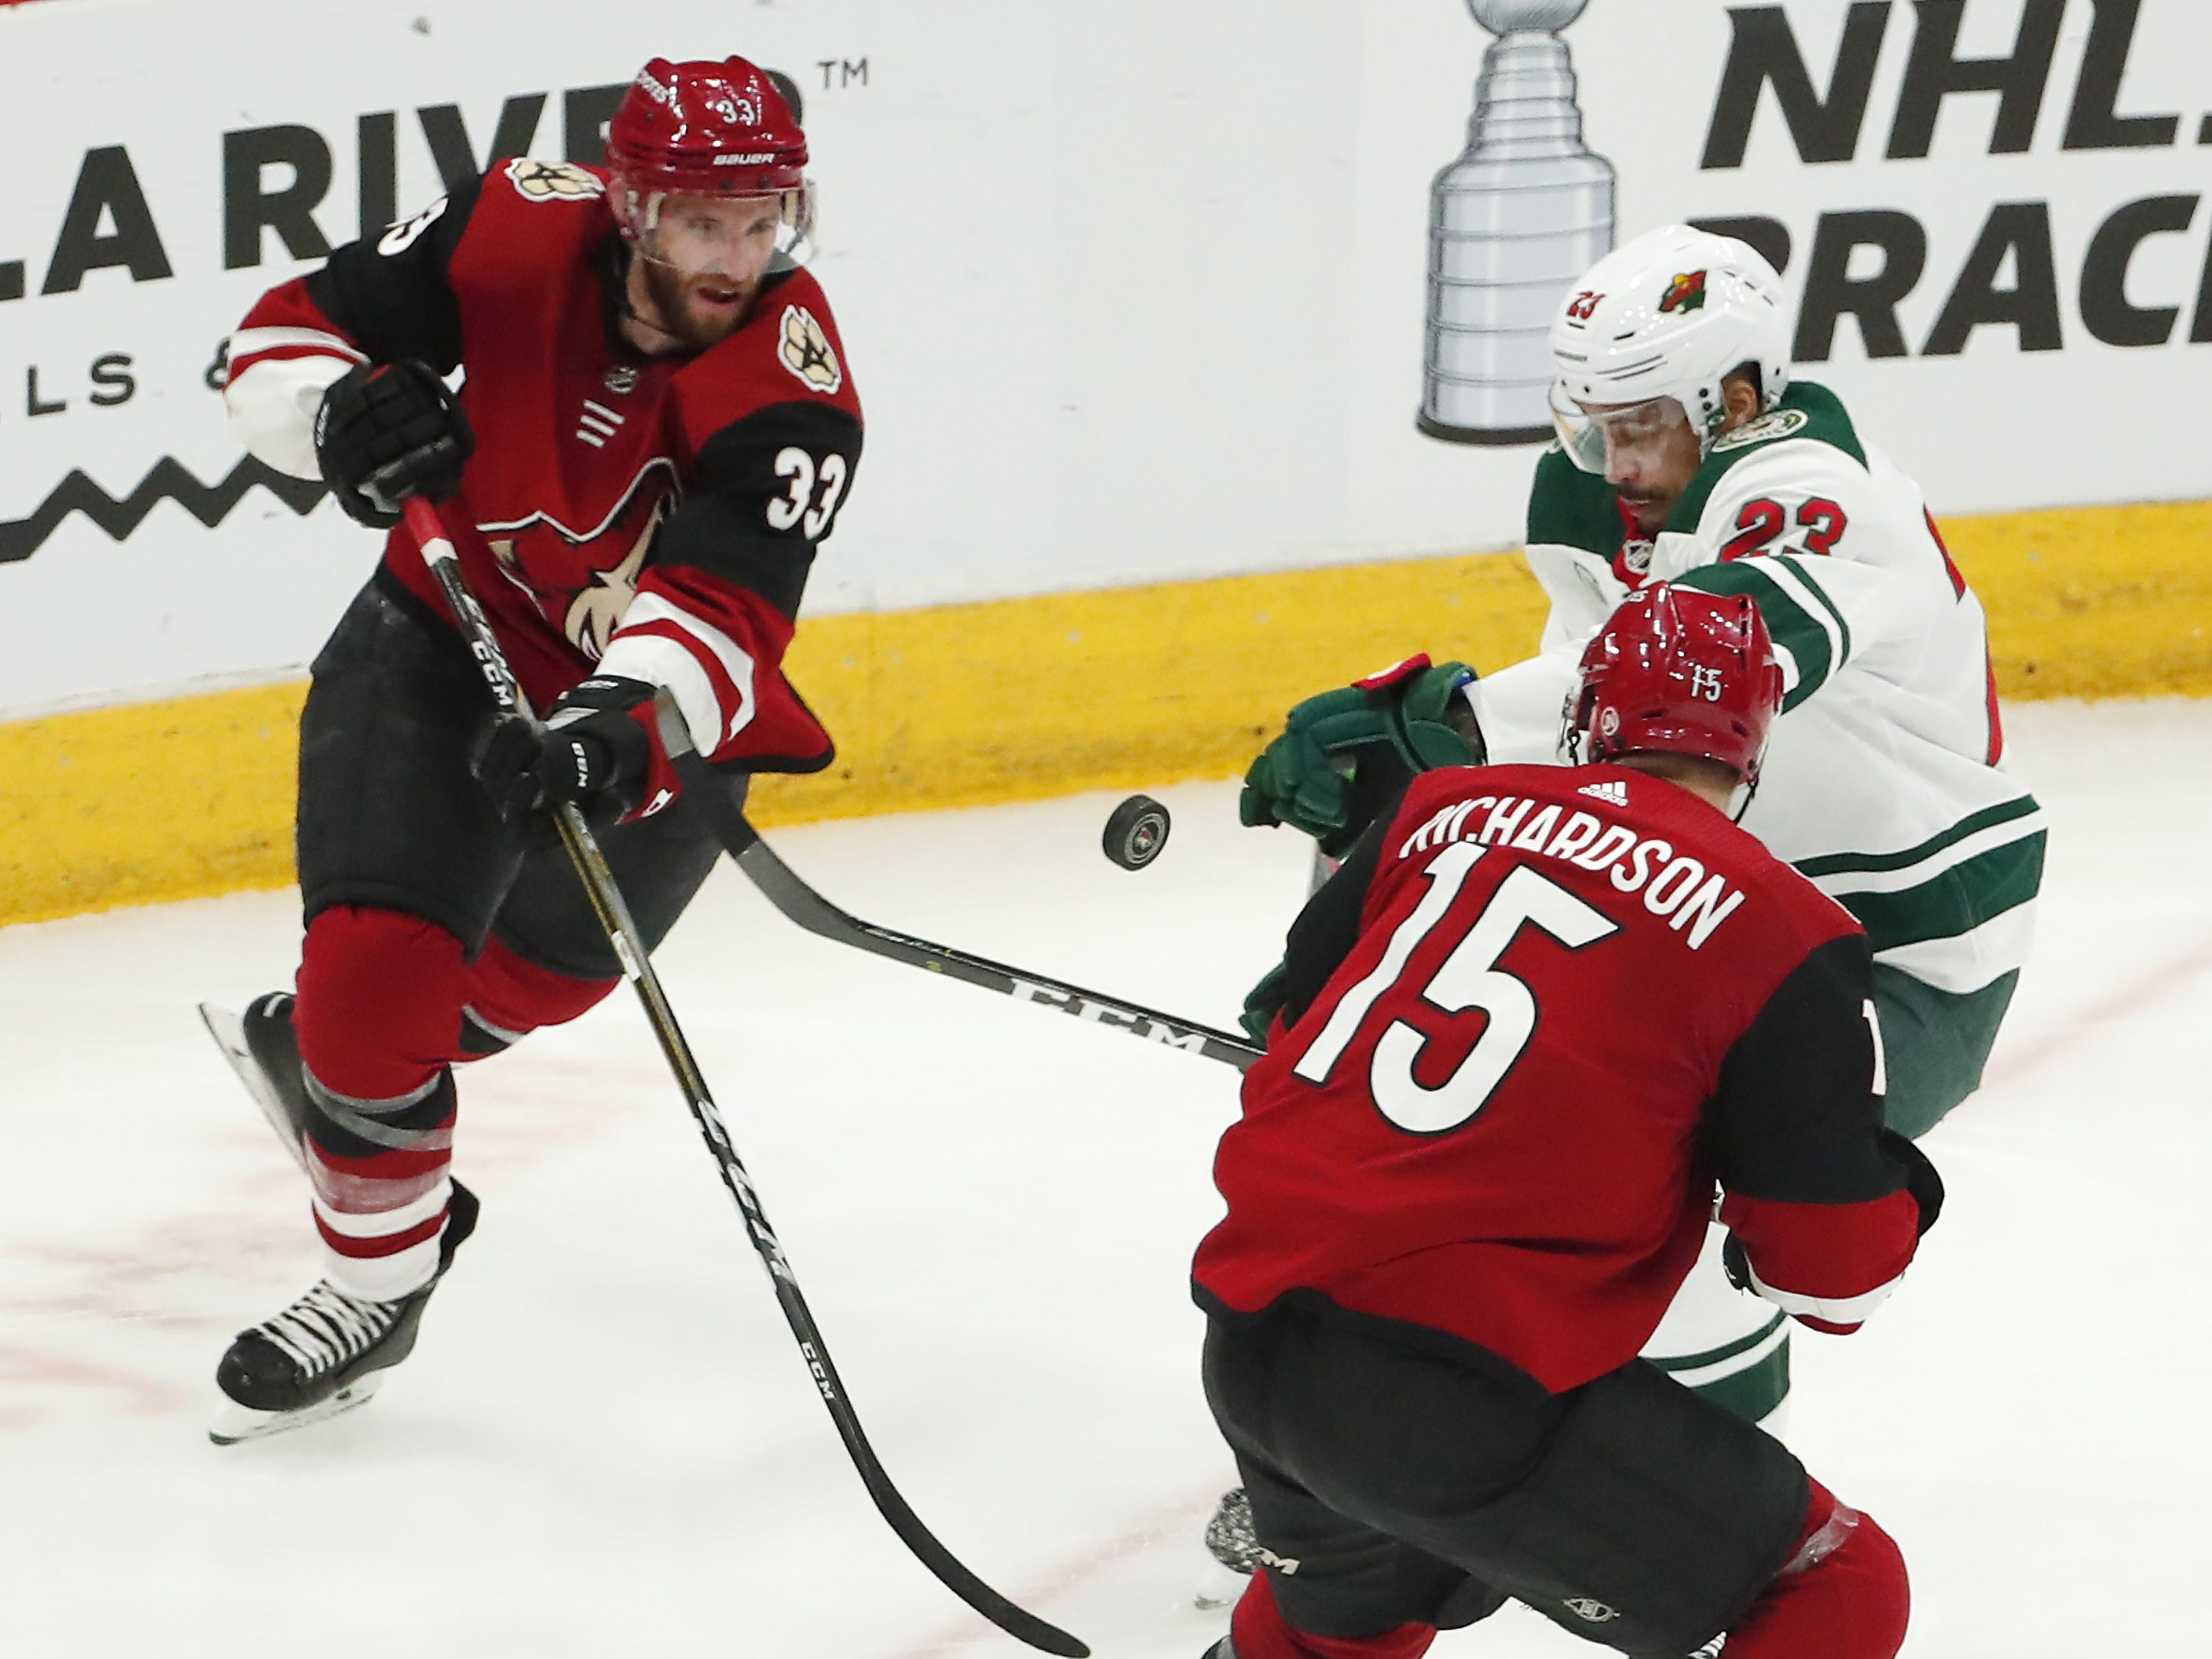 Arizona Coyotes defenseman Alex Goligoski (33) and center Brad Richardson (15) defends Minnesota Wild right wing J.T. Brown (23) during the third period in Glendale March 31, 2019.